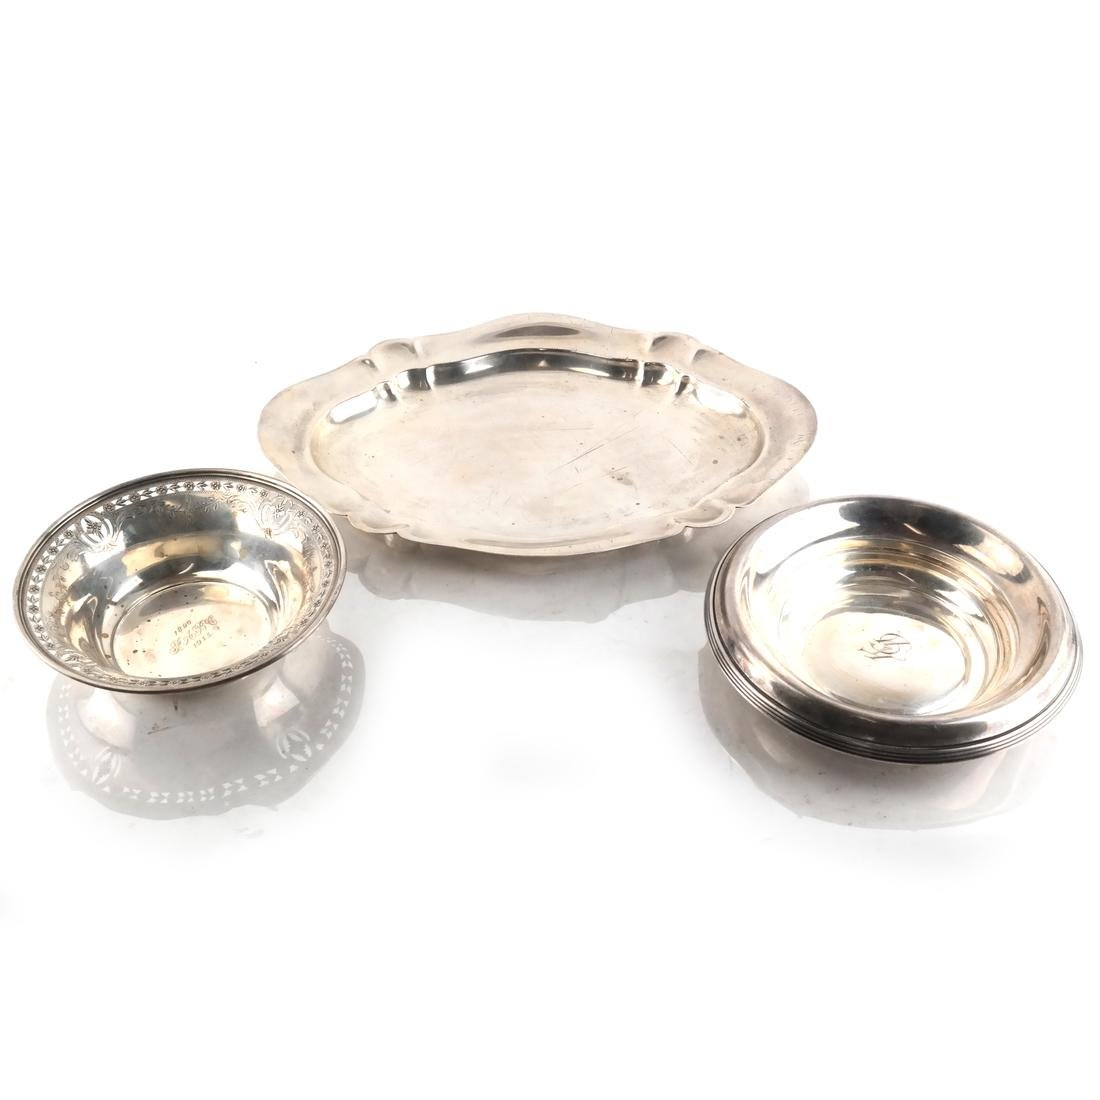 3 Sterling Silver Serving Dishes/Bowls